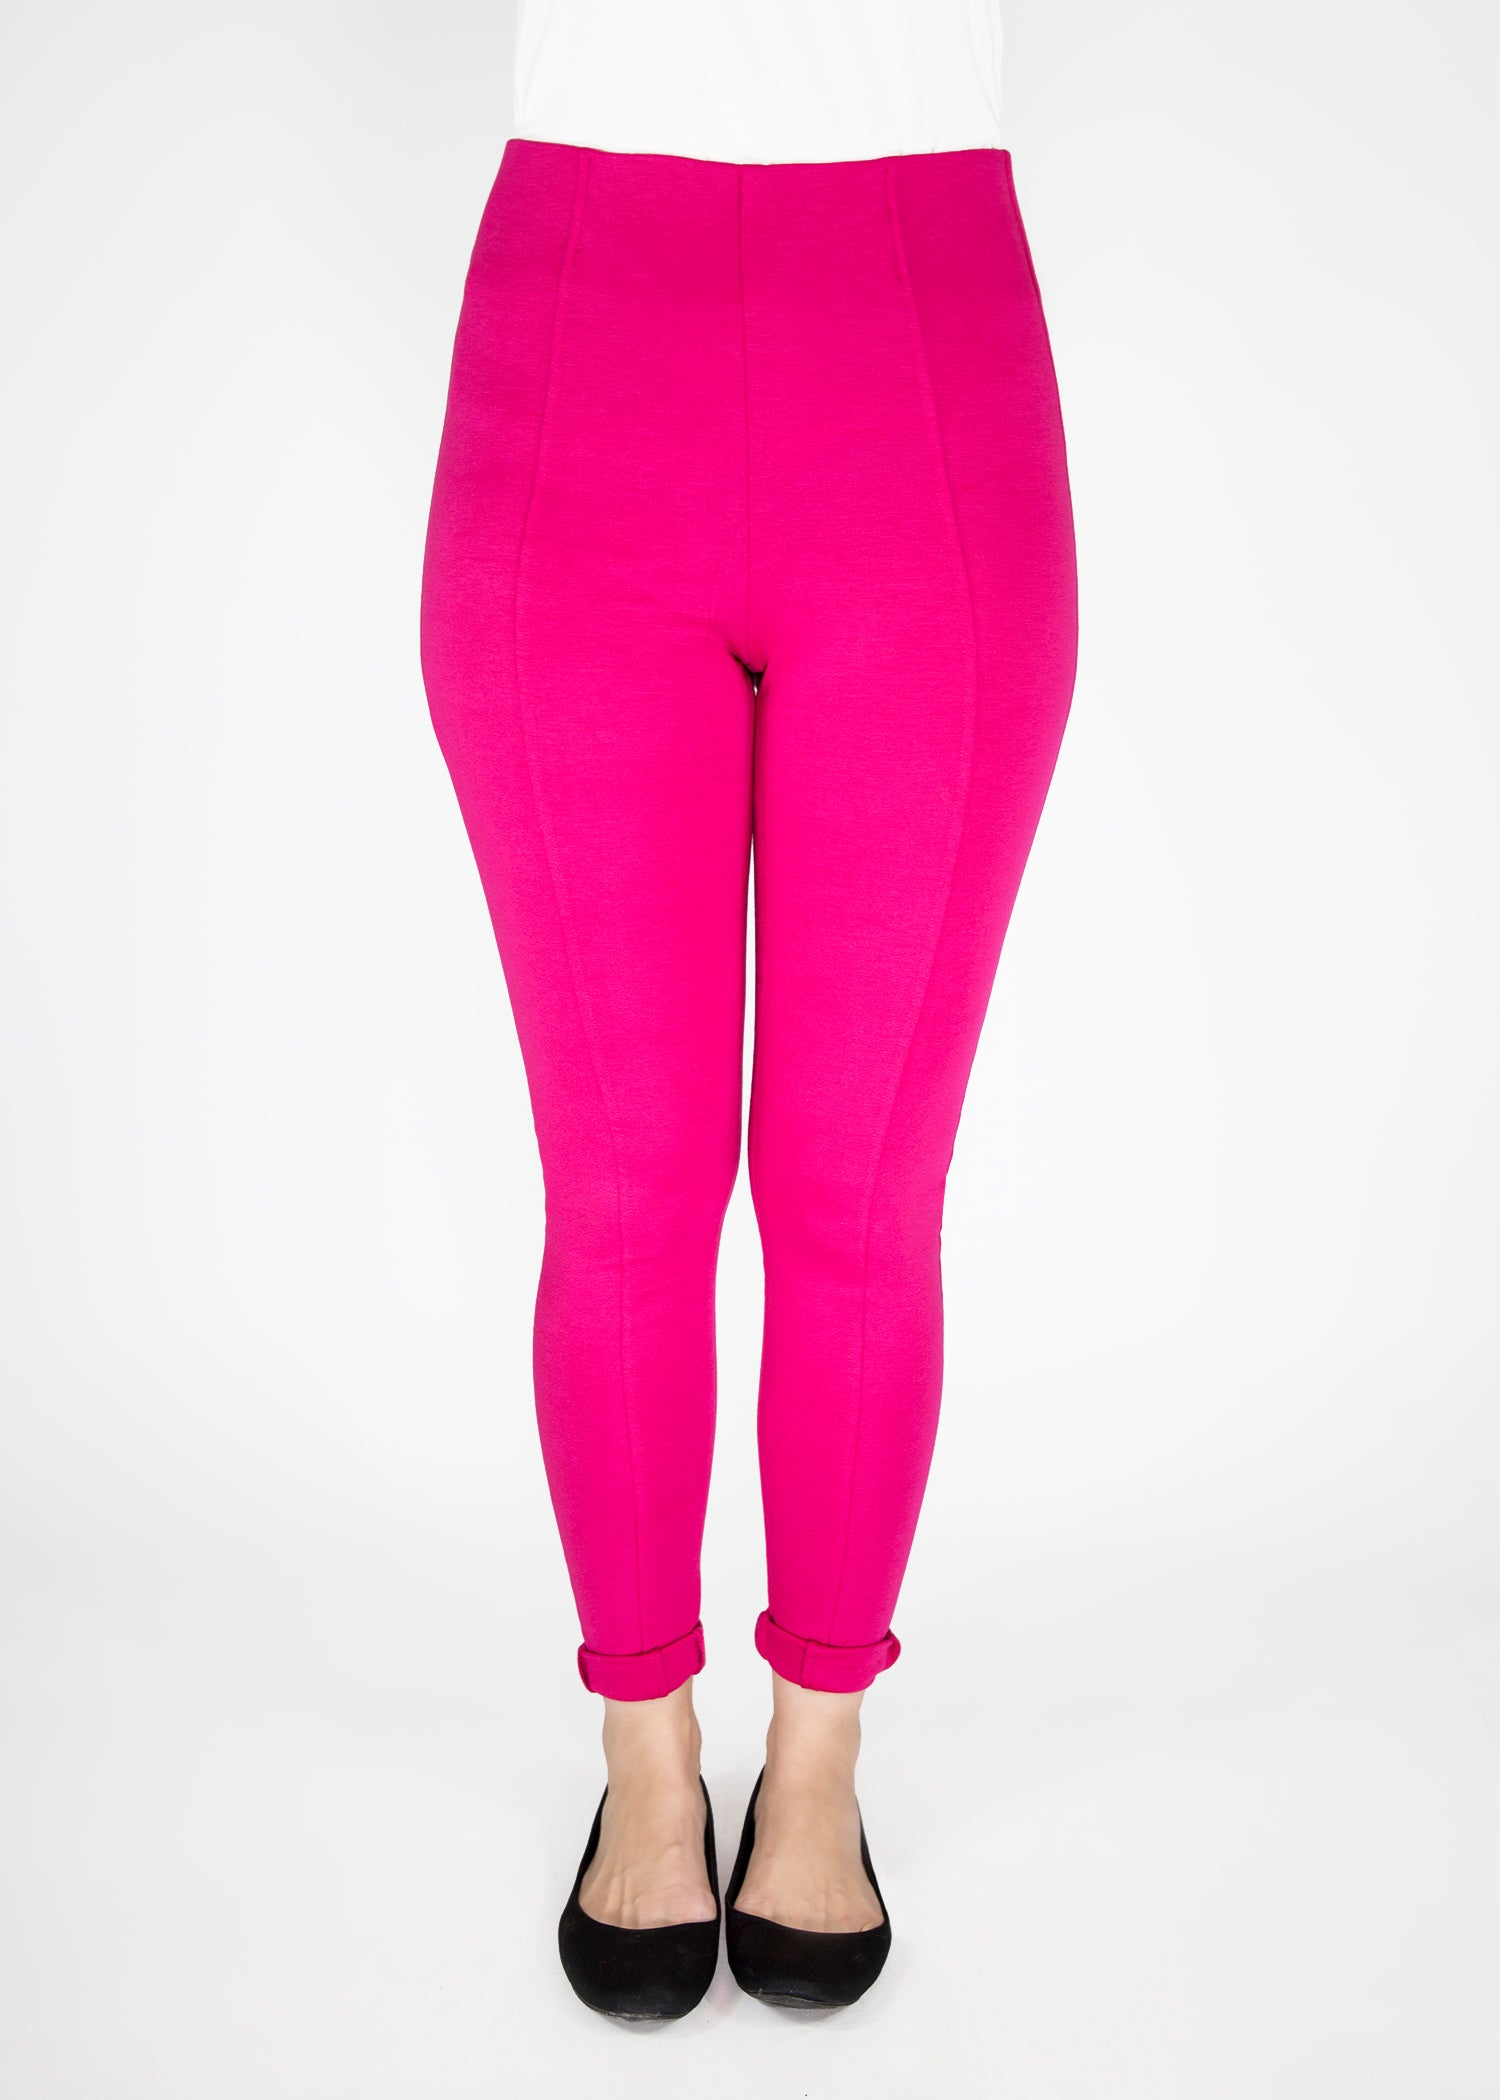 Pixie Pants in Misc Colors/Sizes